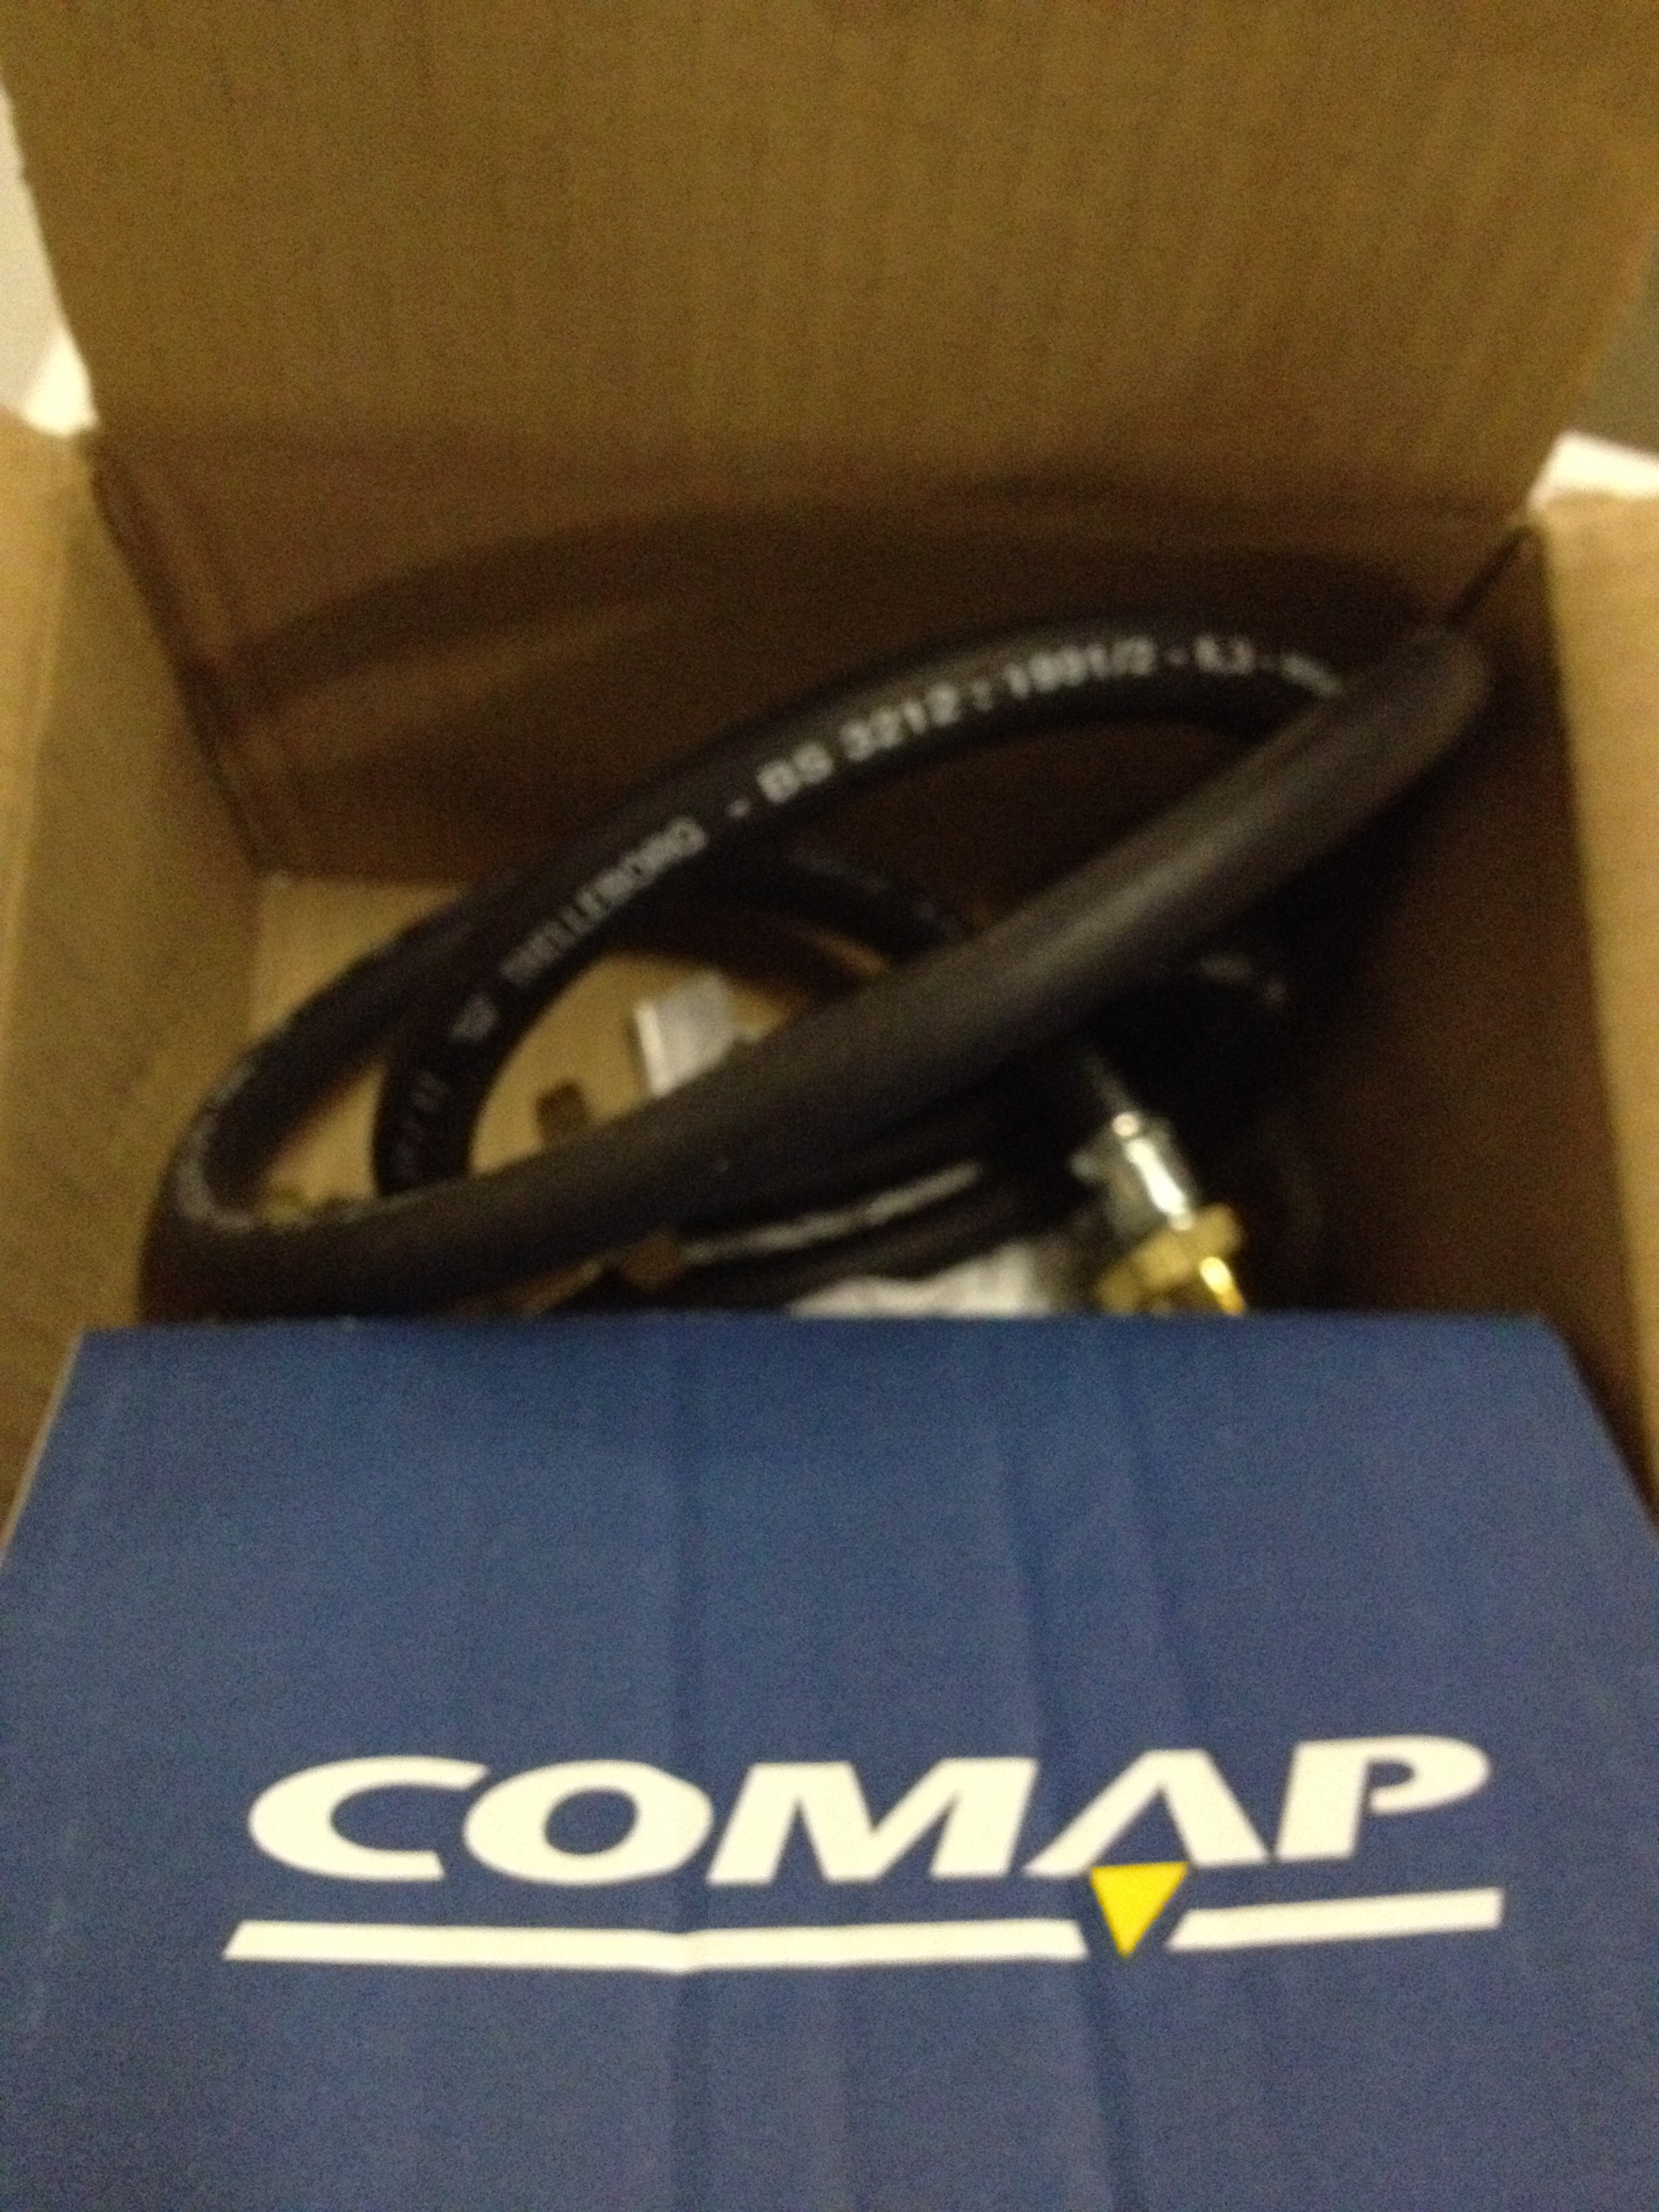 Comap Compact 80 Automatic Changeover Regulator. (Propane use only) - Image 4 of 4